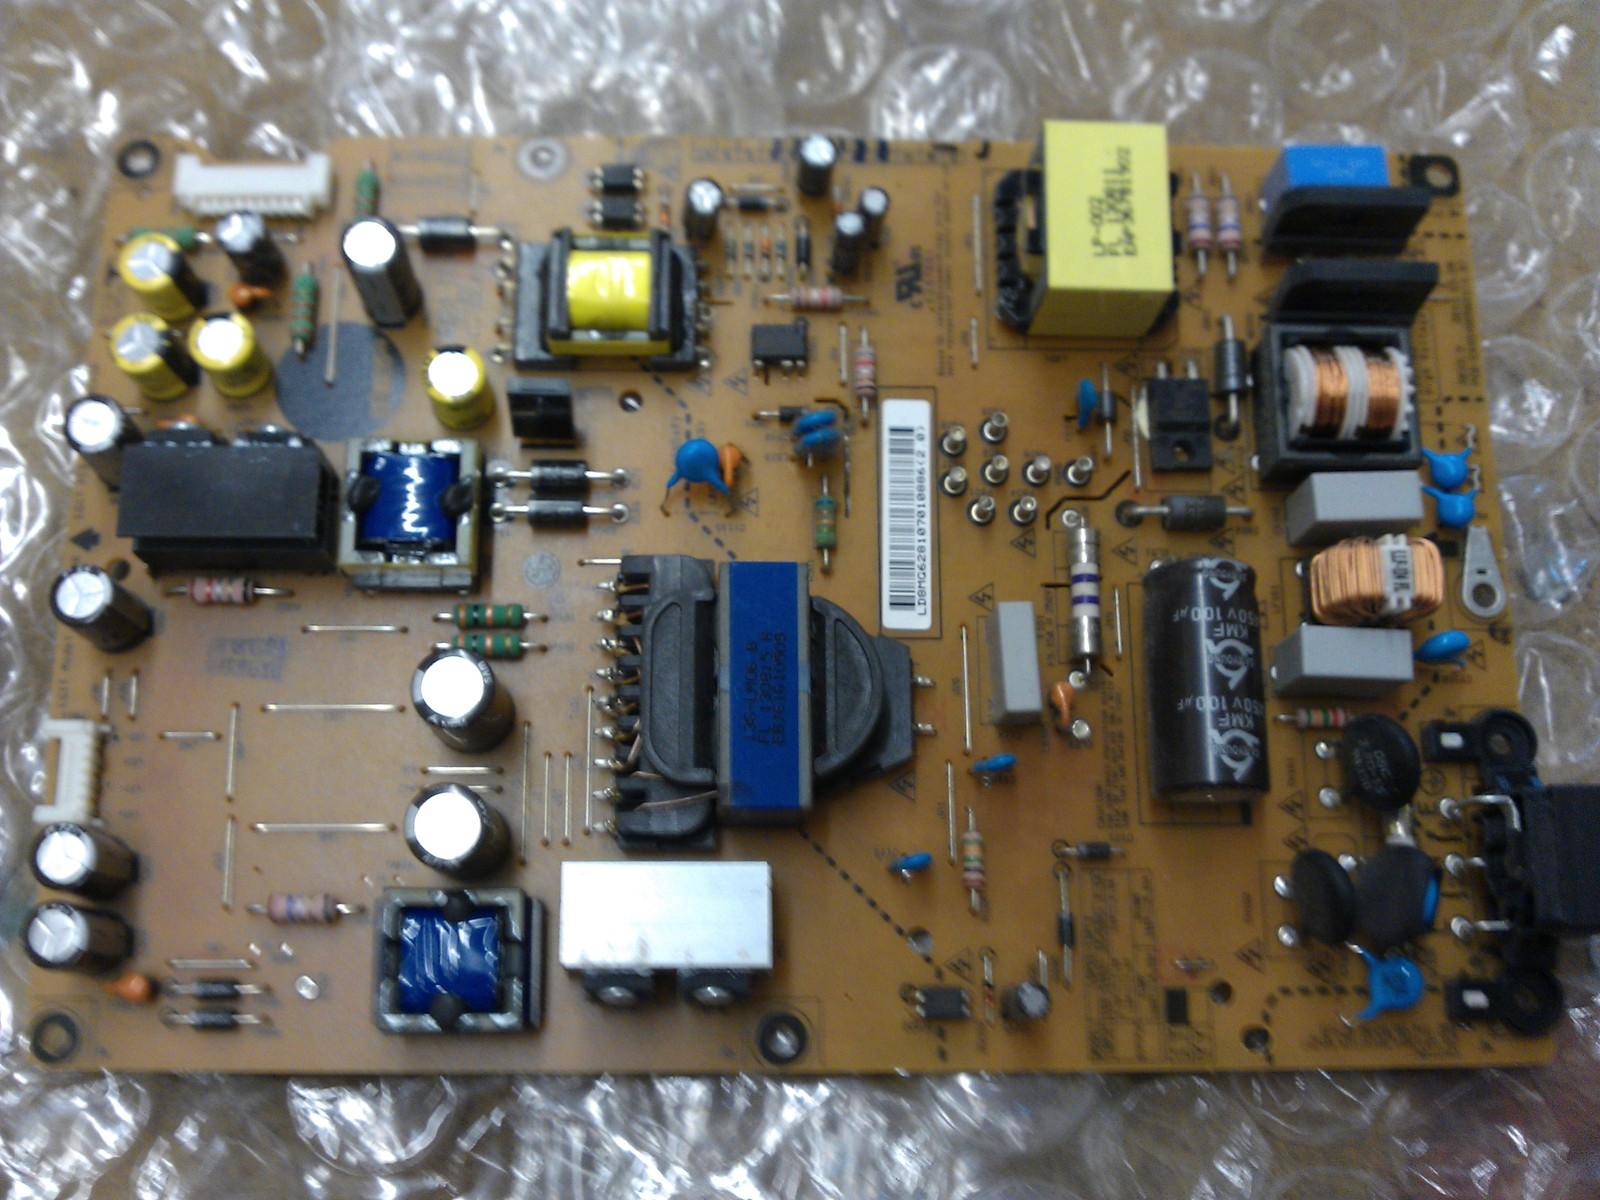 EAY62810701 Power Supply Board From LG 55LA6200-UA BUSULJR LCD TV